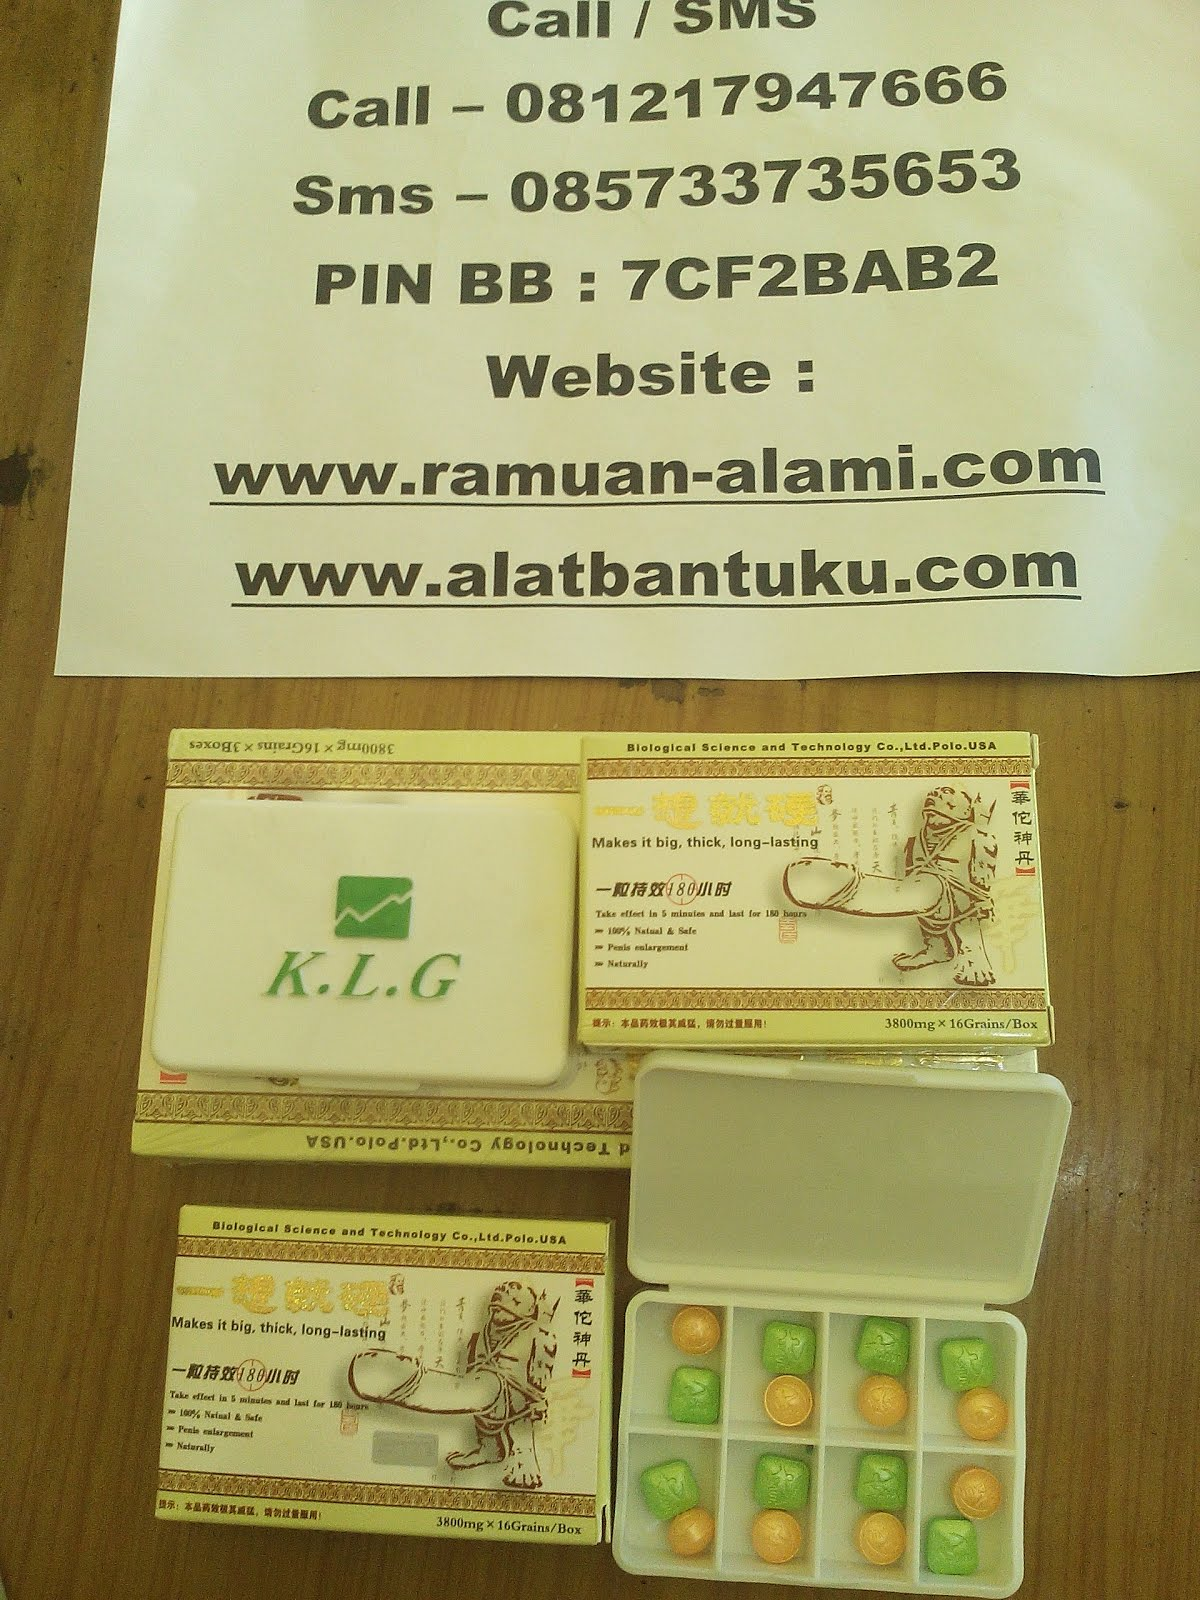 PIL KLG PEMBESAR HERBAL